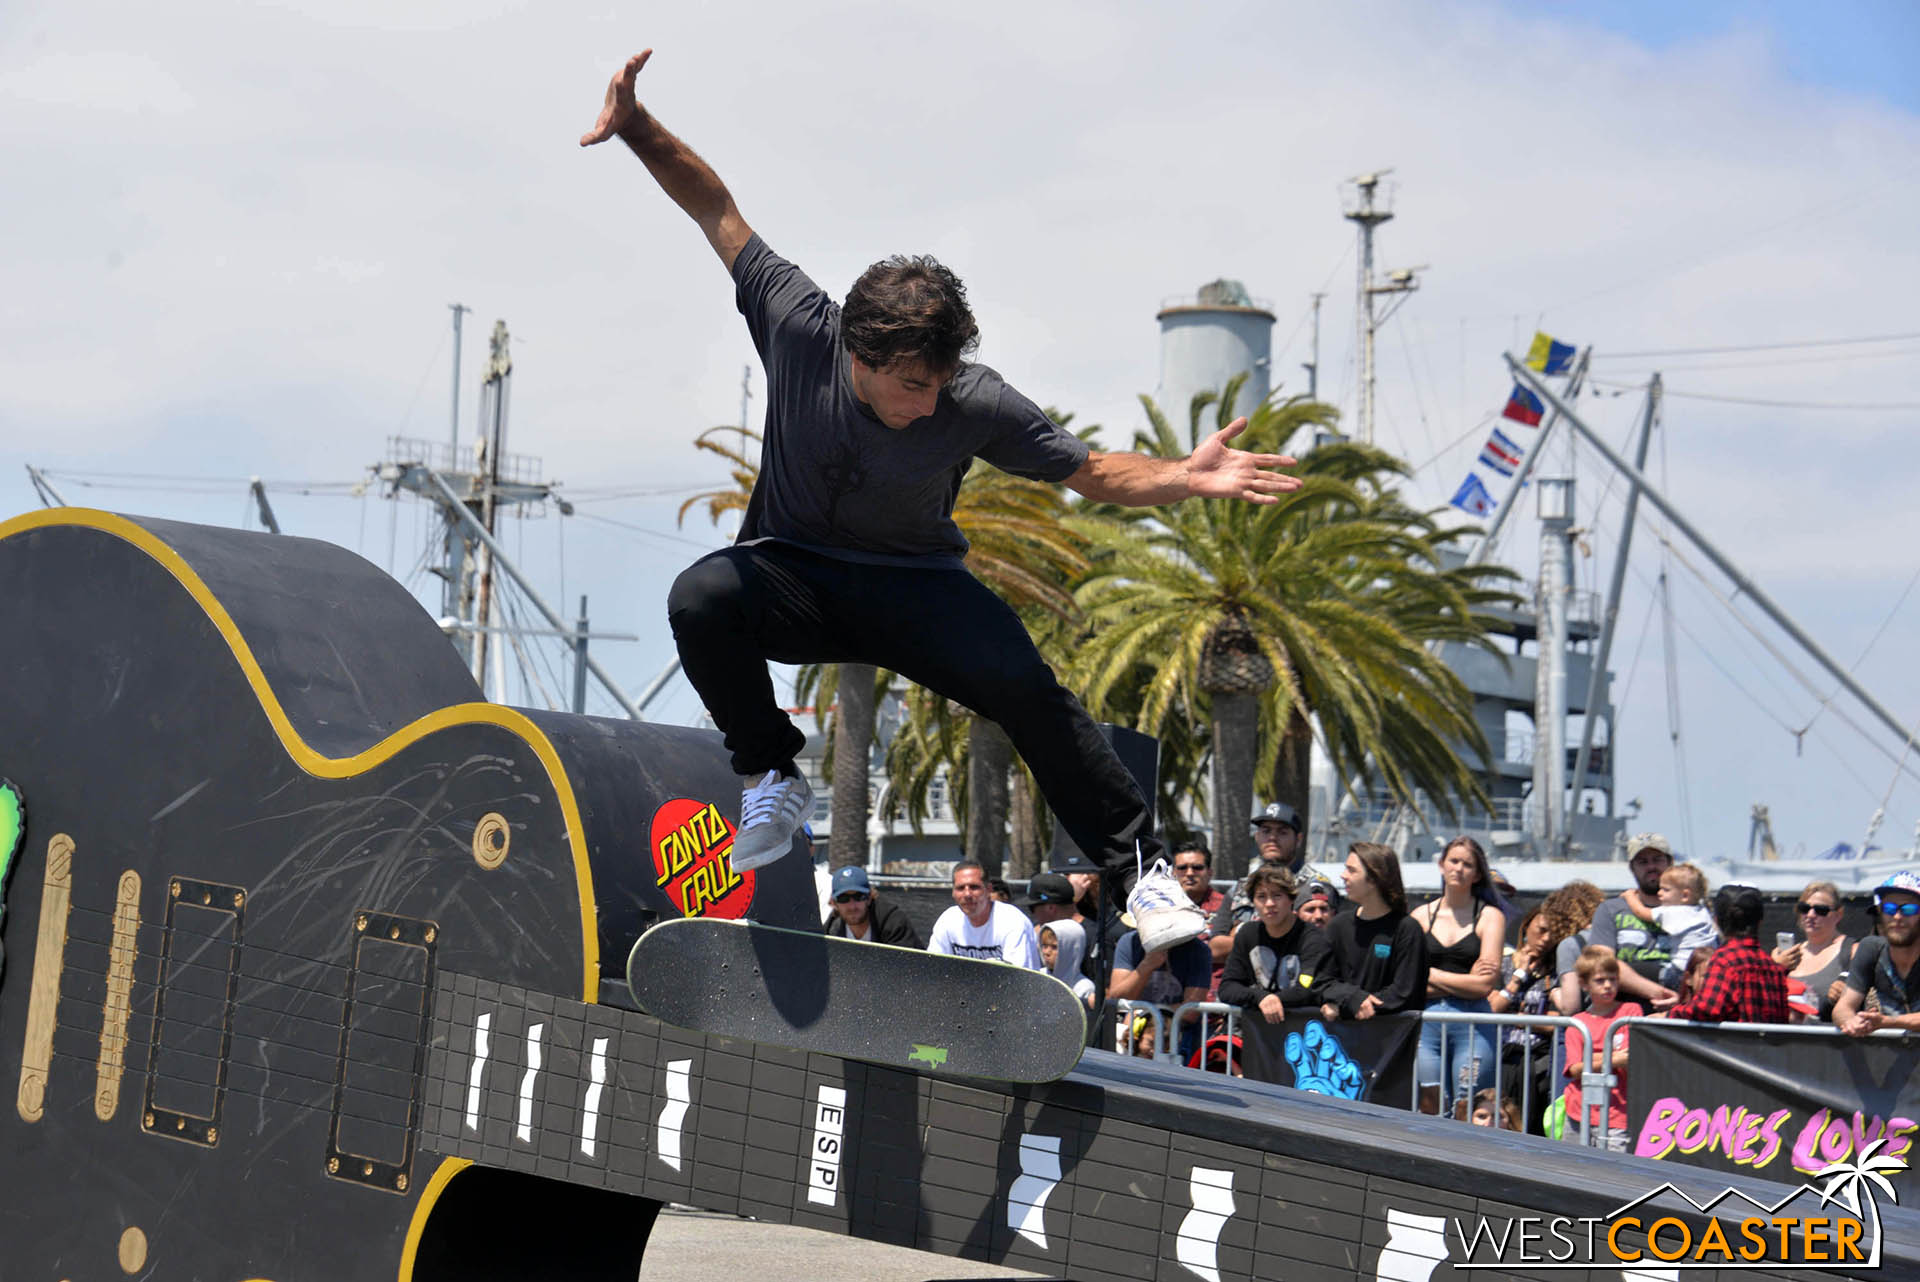 A skateboarder does a trick in the temporary skate park.